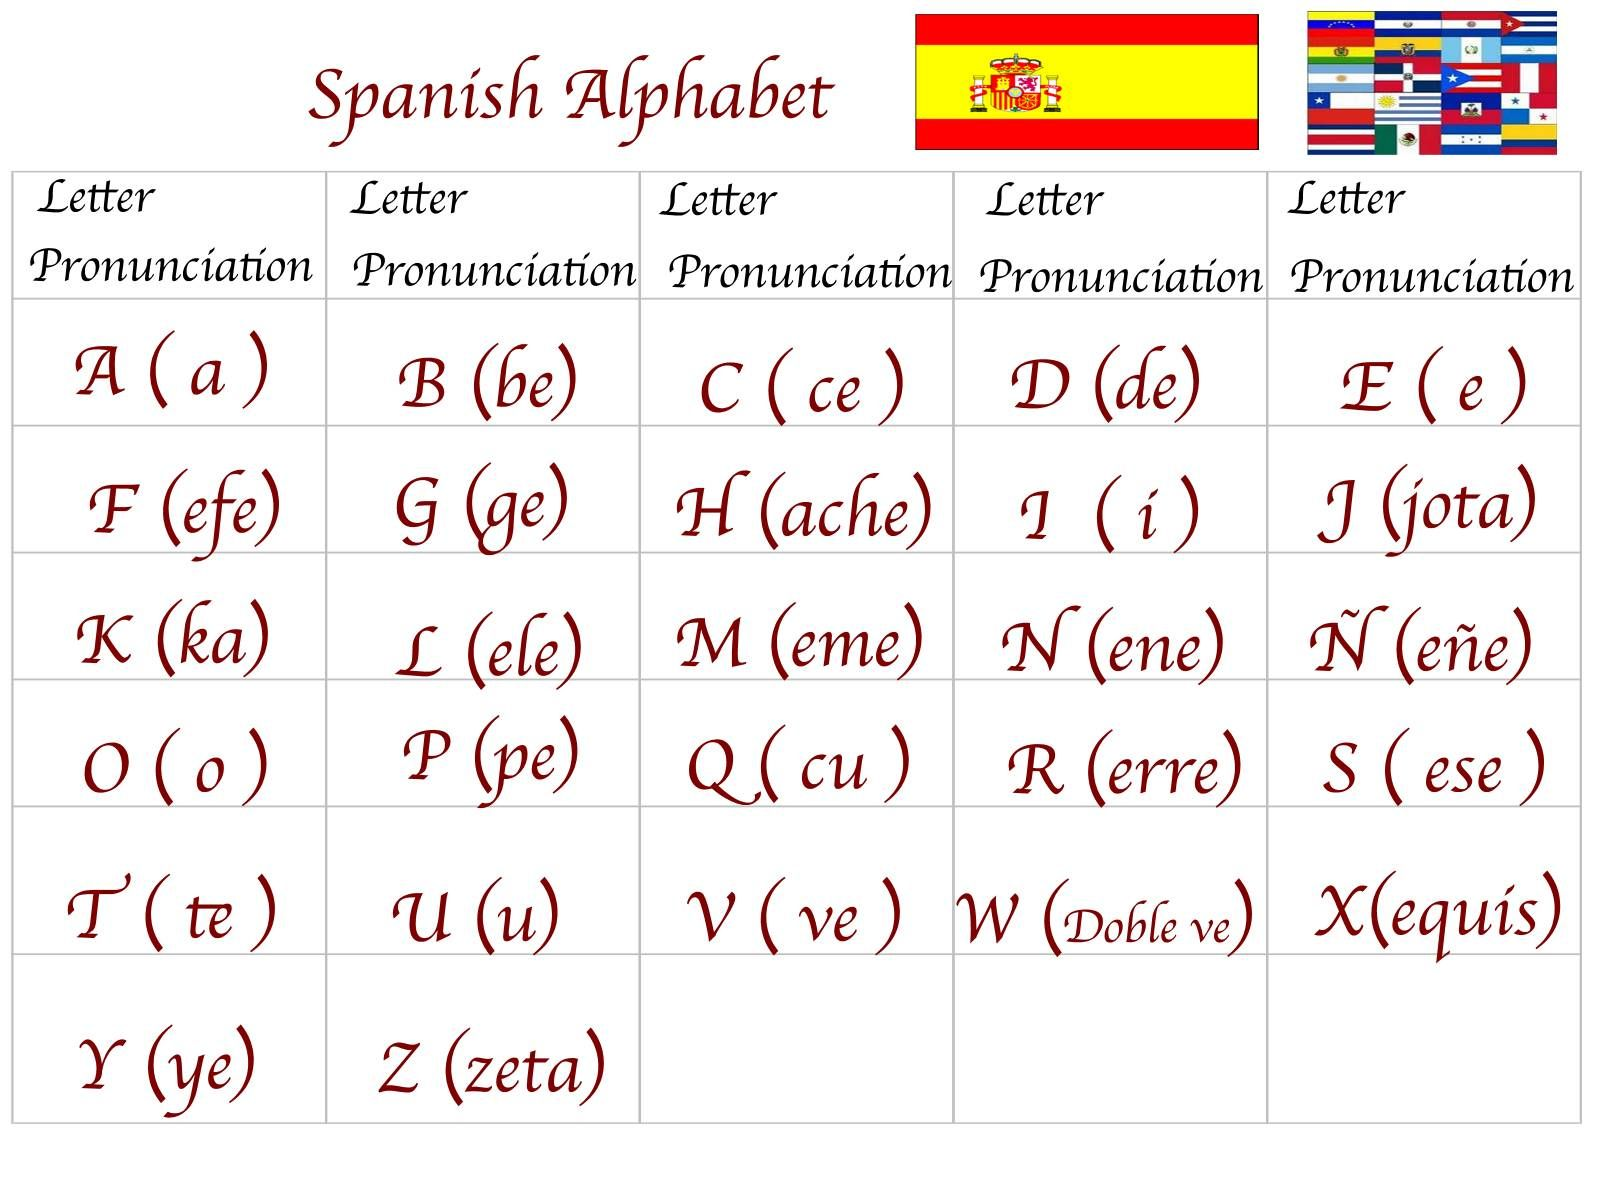 Spanish For You Class 1 Alphabet El Alfabeto 7aeslvvr Spanish